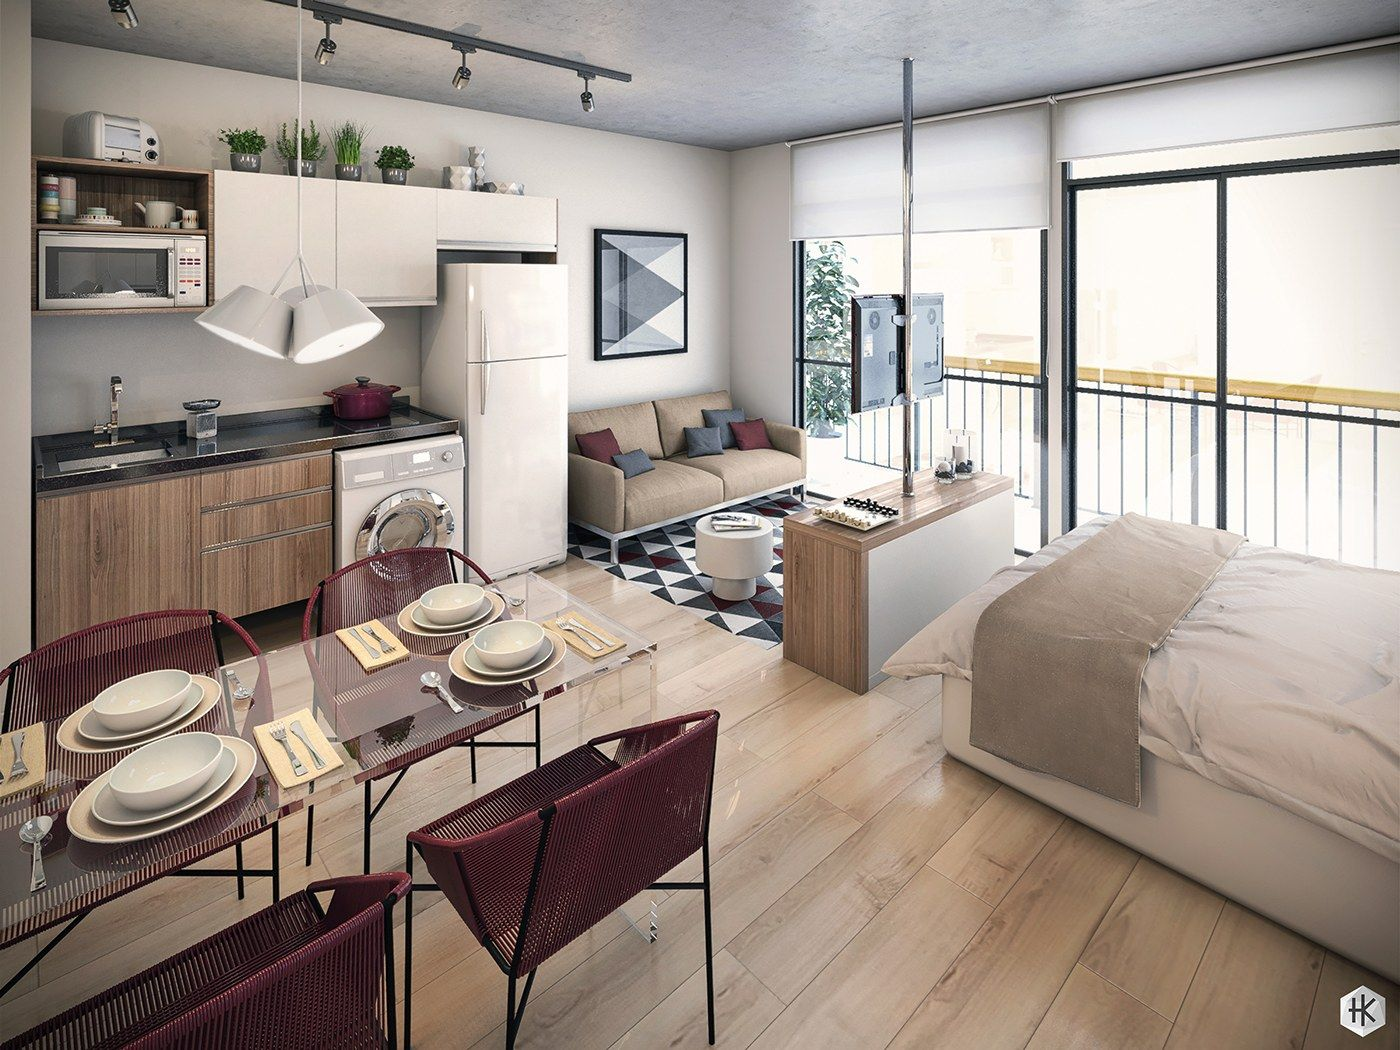 Studio Apartment Vs Loft 36 creative studio apartment design ideas | studio apartment